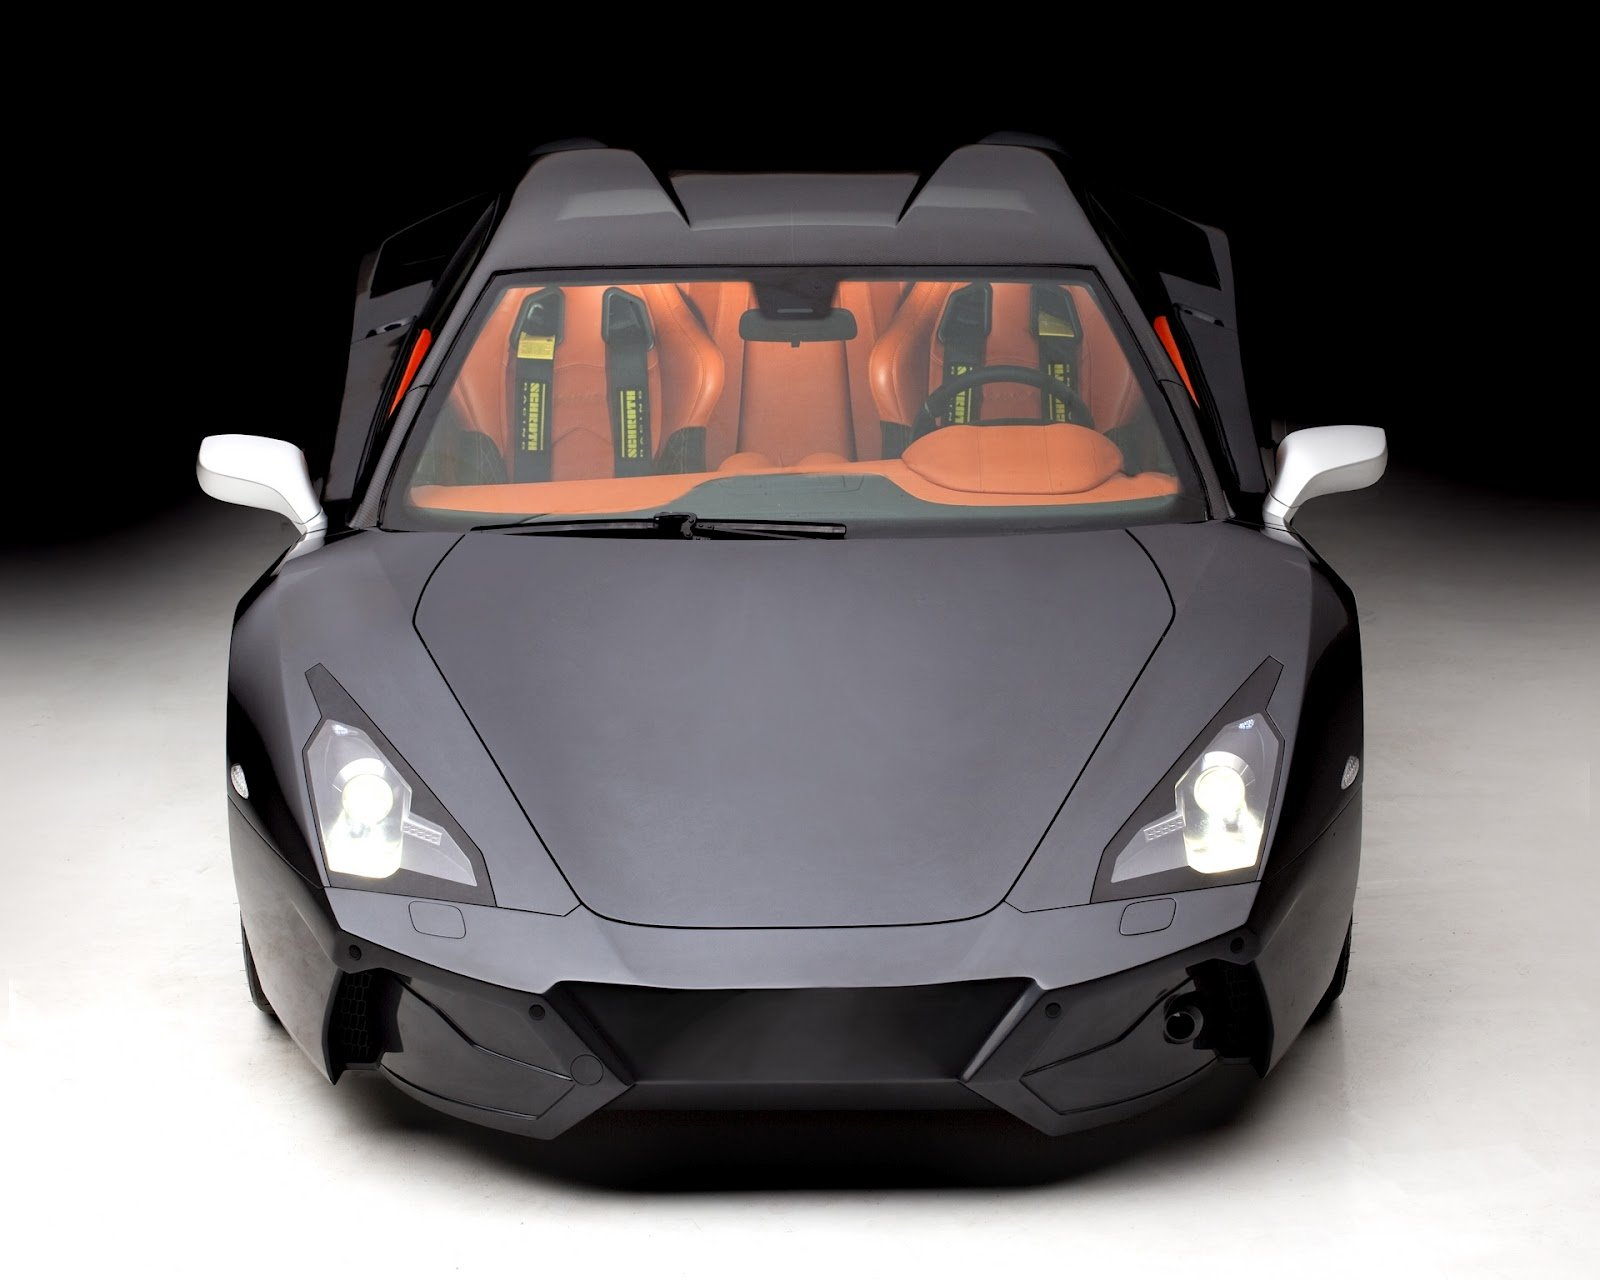 New 2013 Arrinera Supercar Auto Cars Concept On This Month